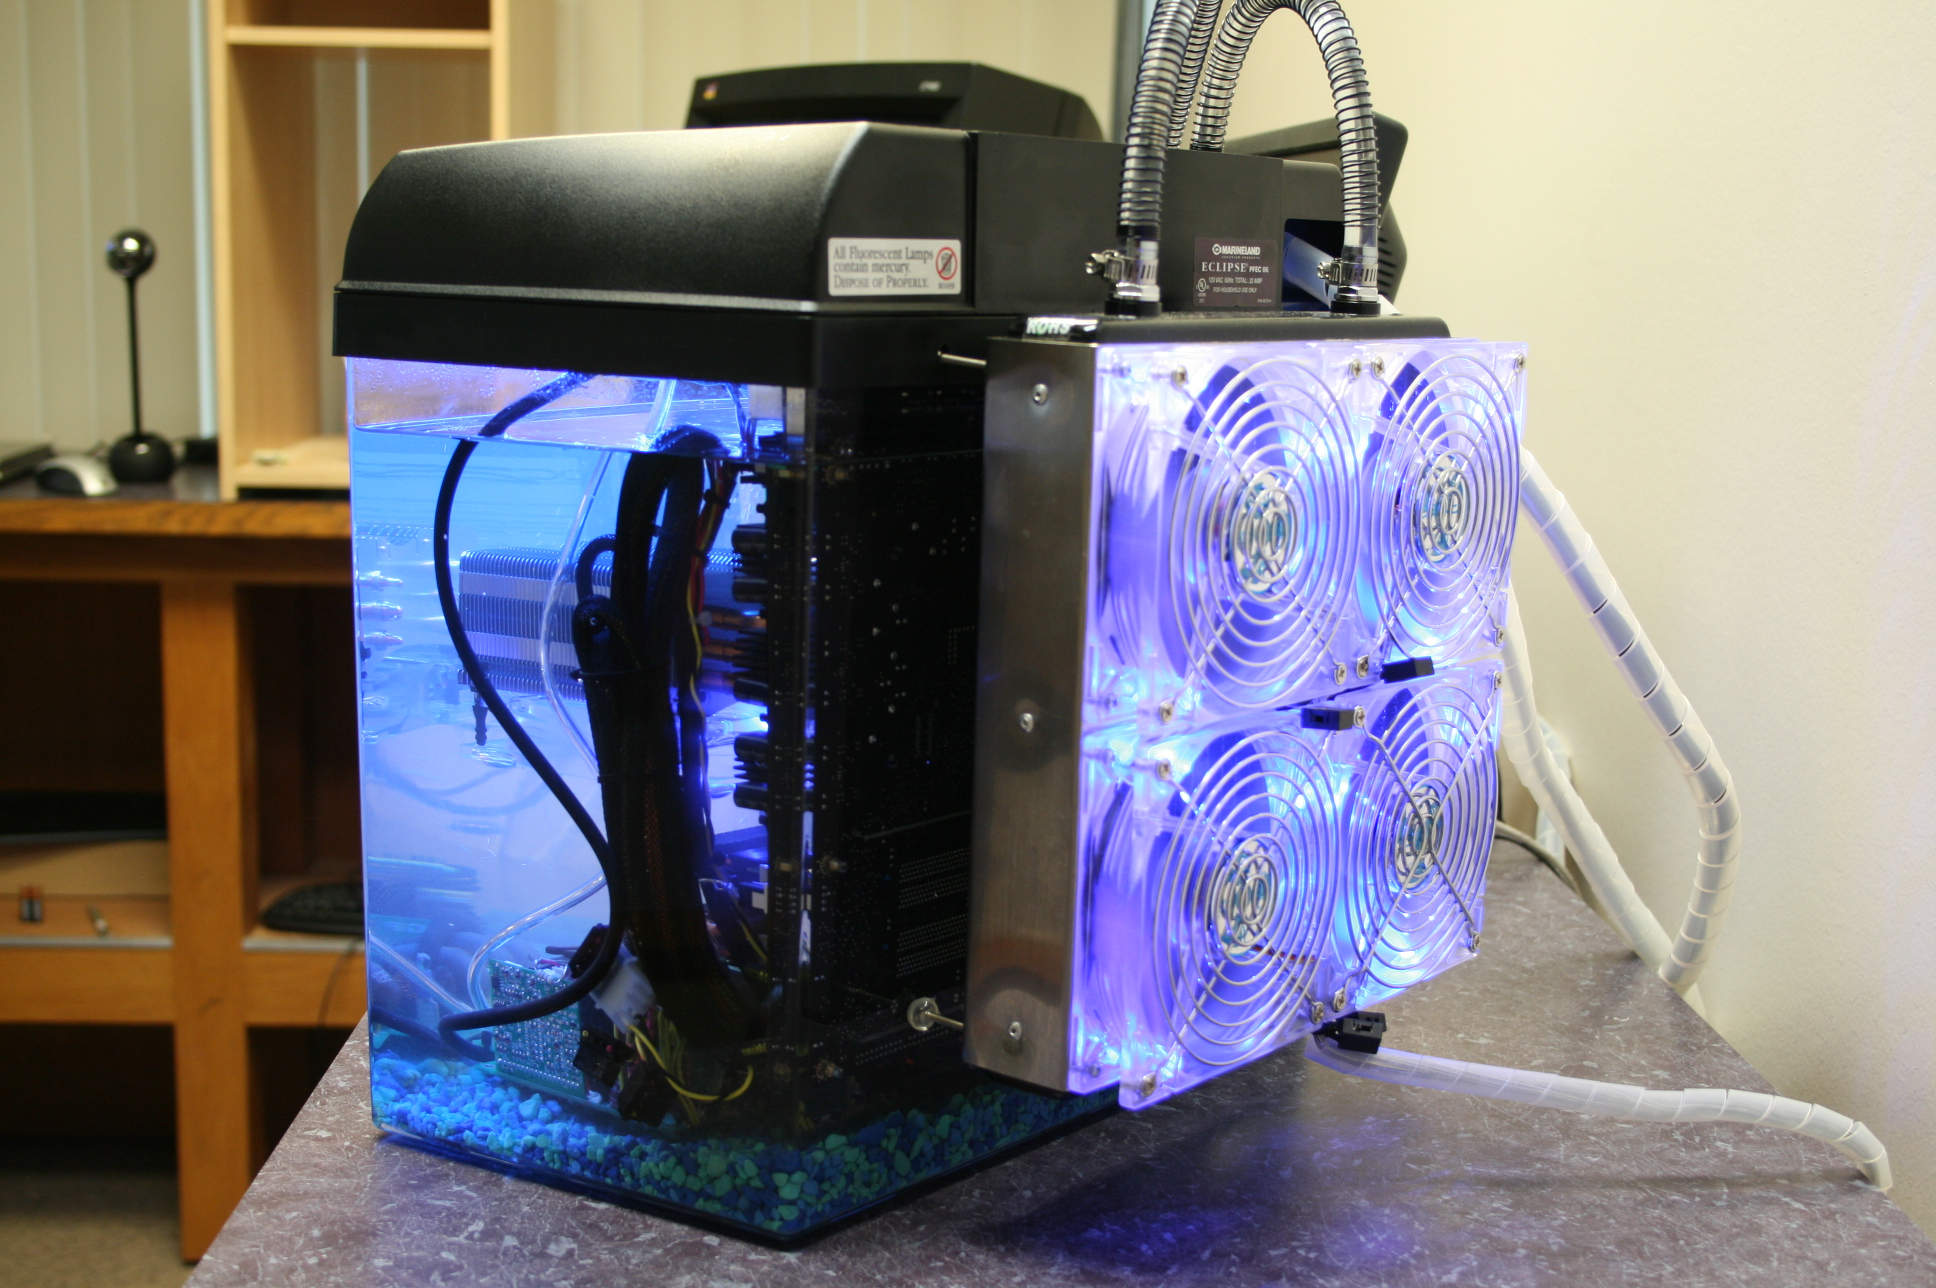 How To Install A Computer Water Cooling System Apps Directories #0356C8